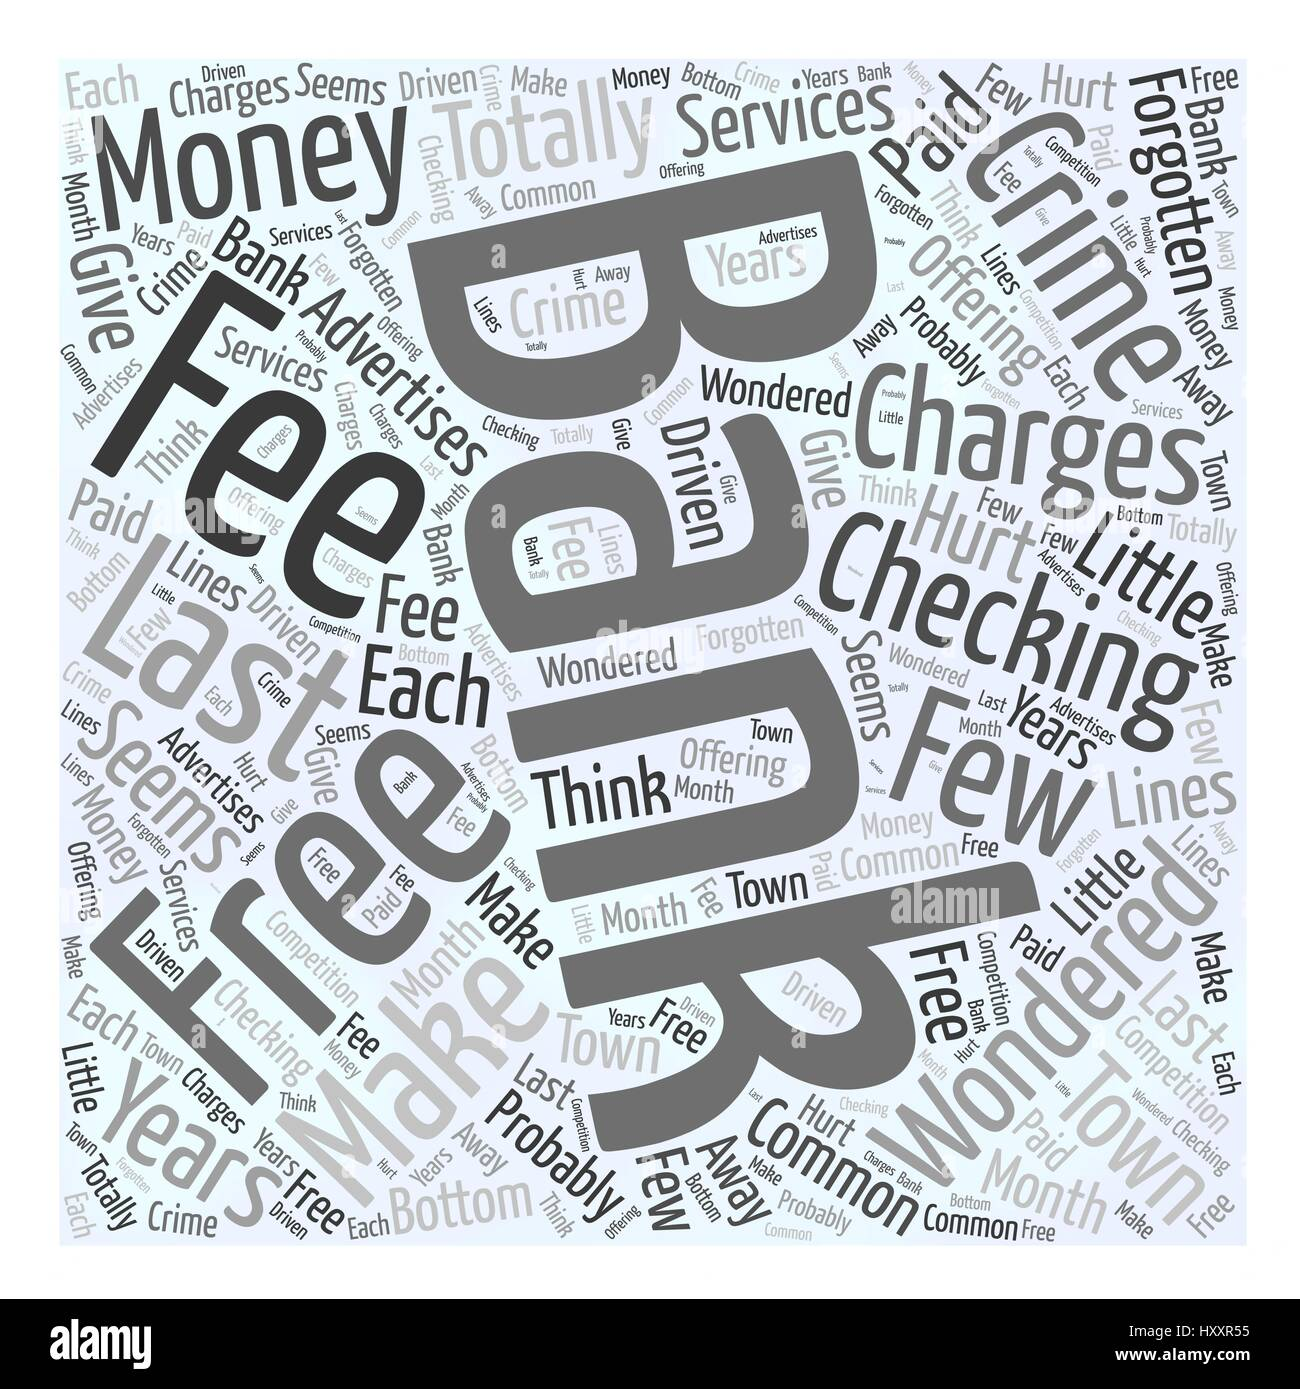 Bank Charges that are a Crime Word Cloud Concept - Stock Vector